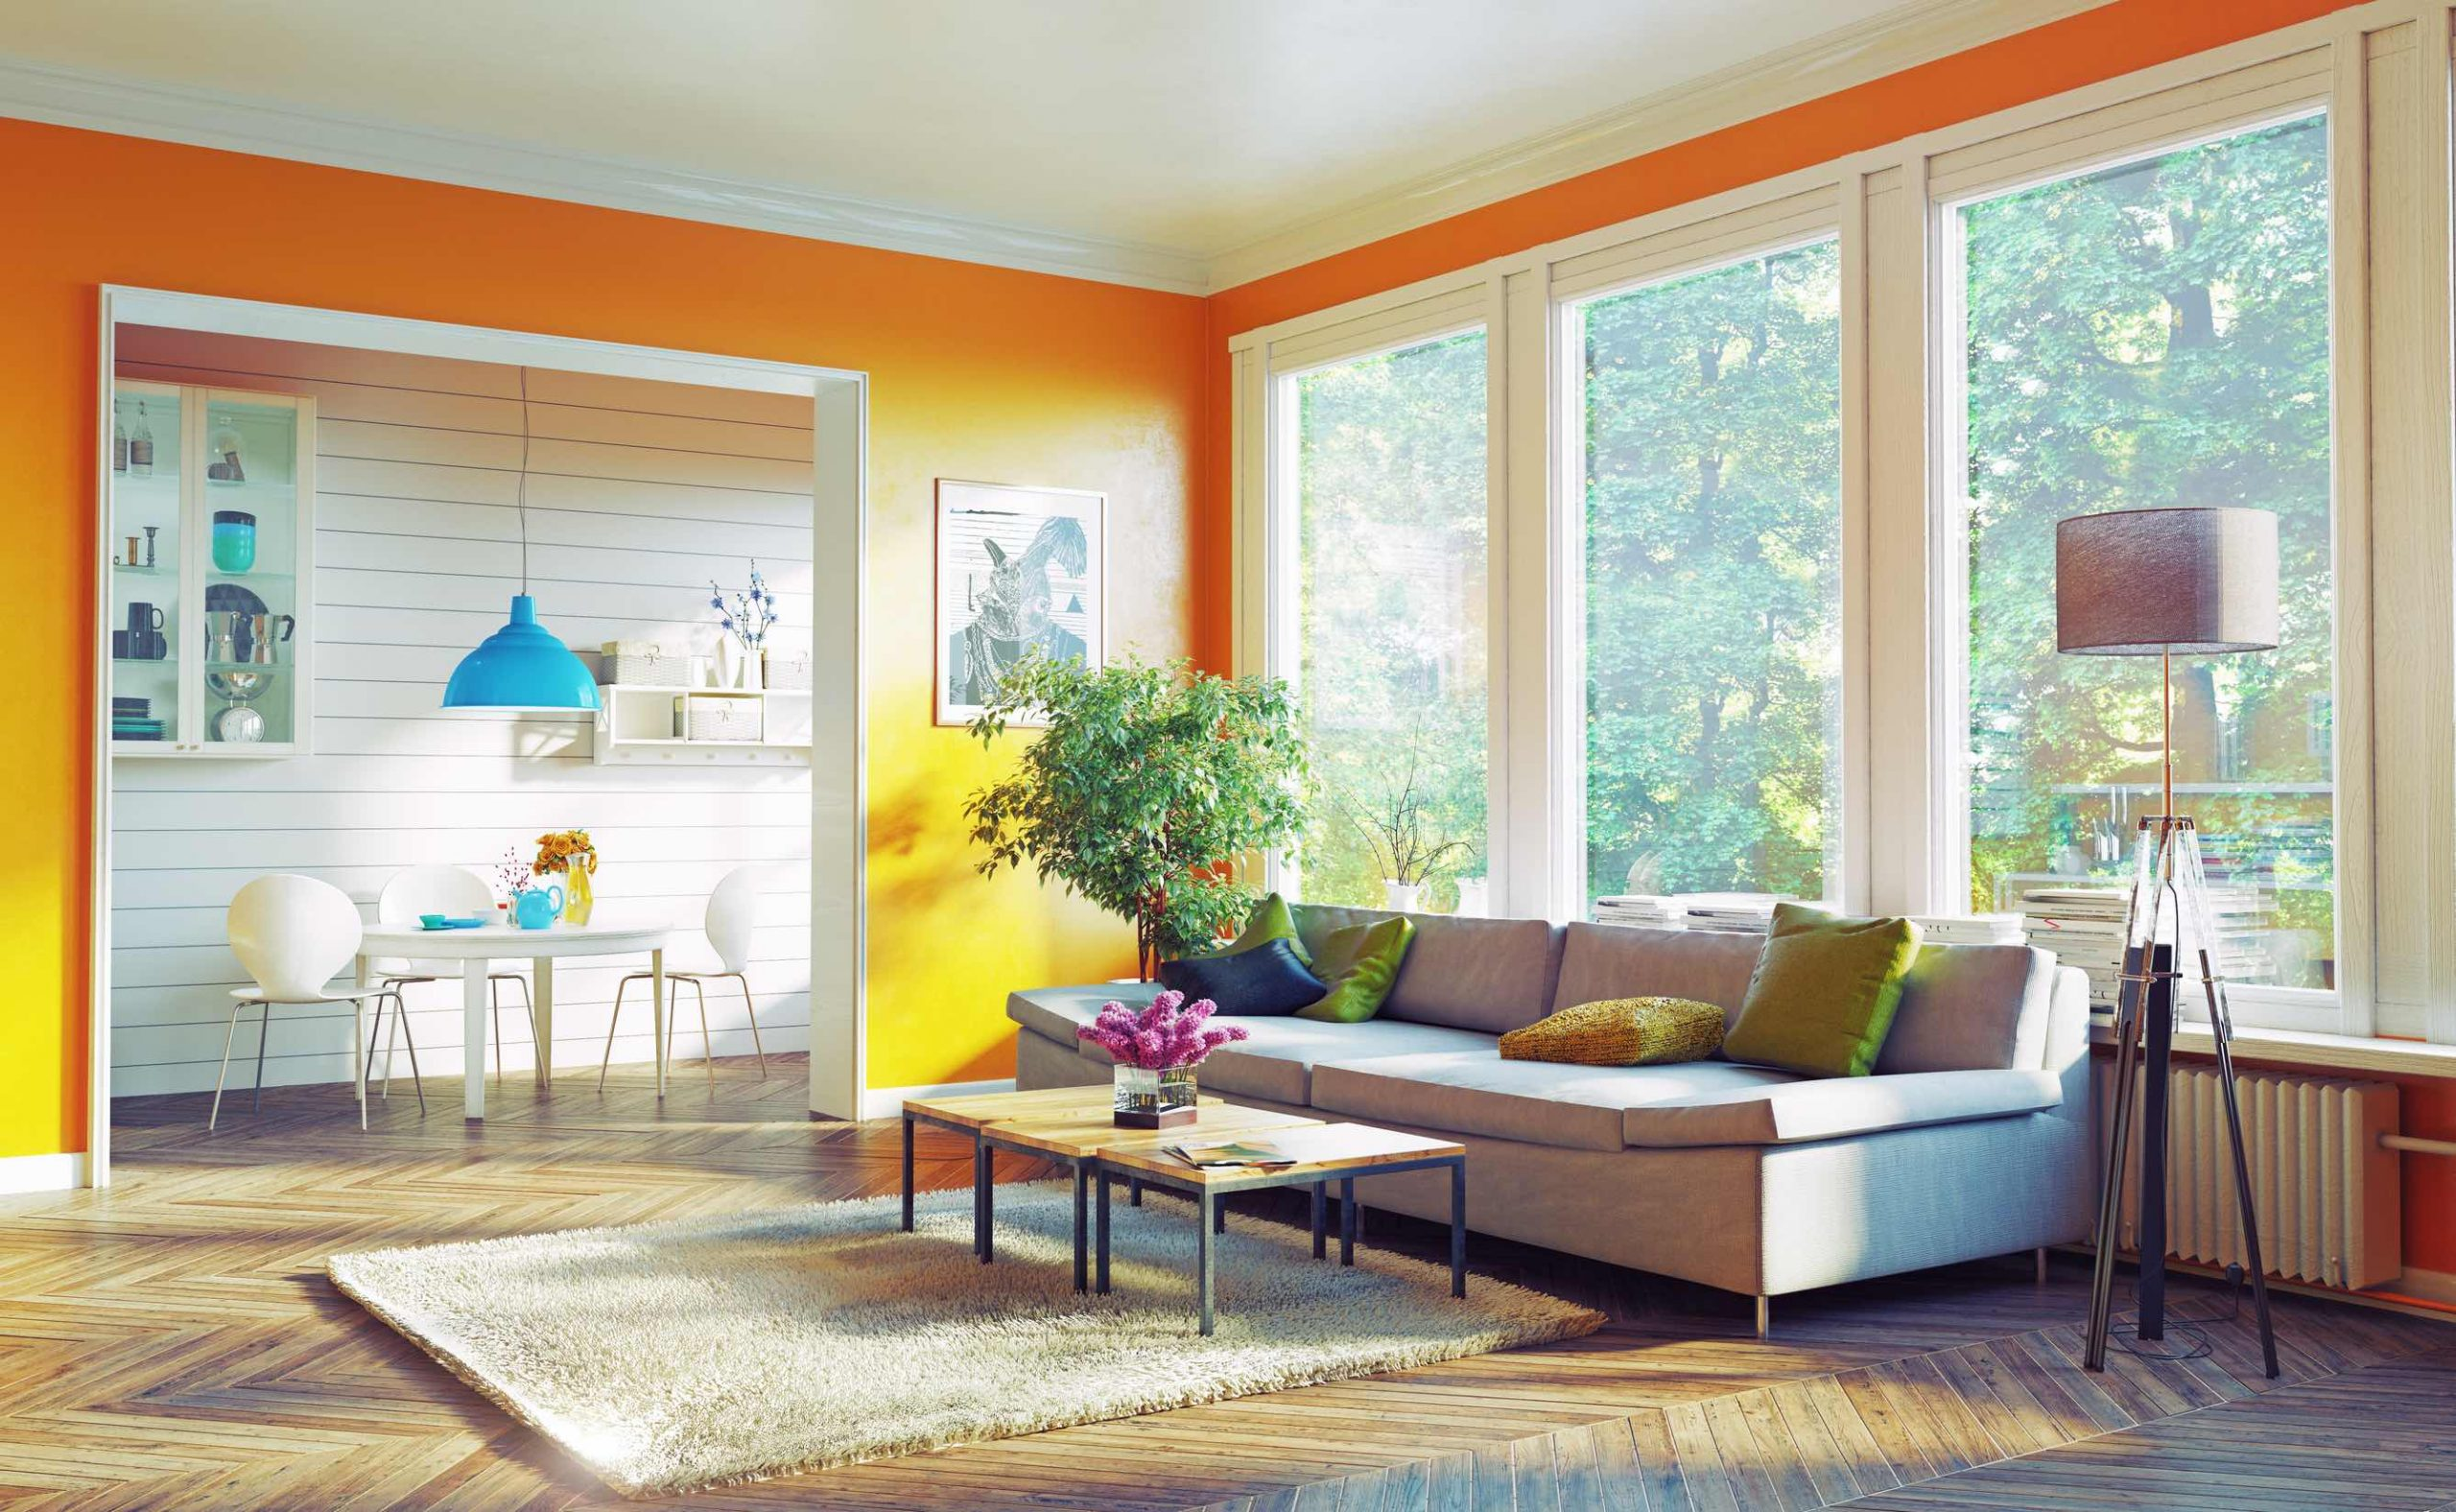 Top Benefits of Residential Window Tint in New Orleans, Louisiana